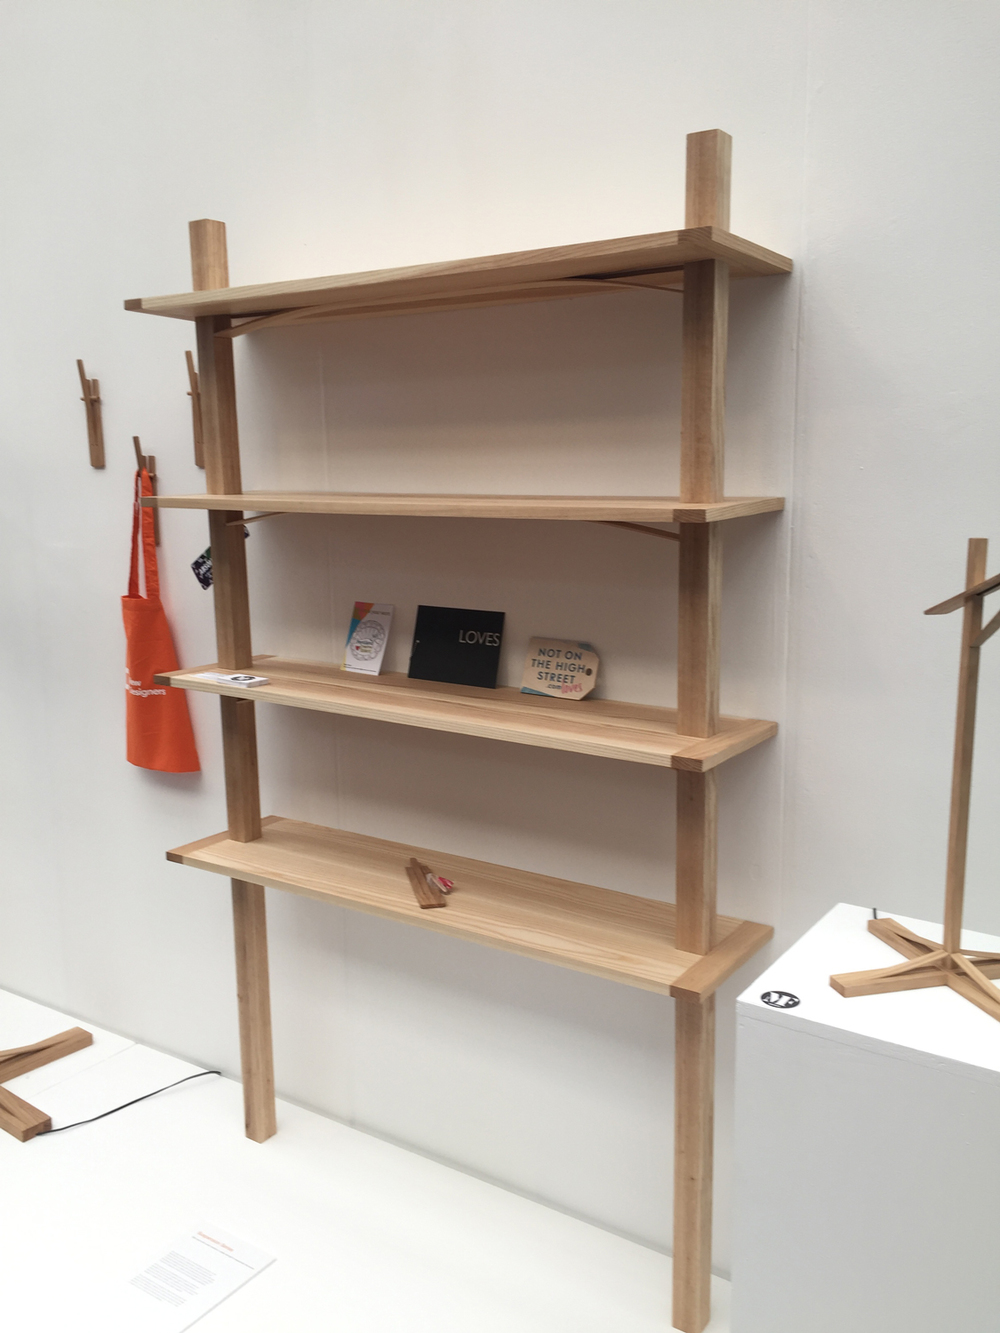 Matthew Flower – Shelving Unit